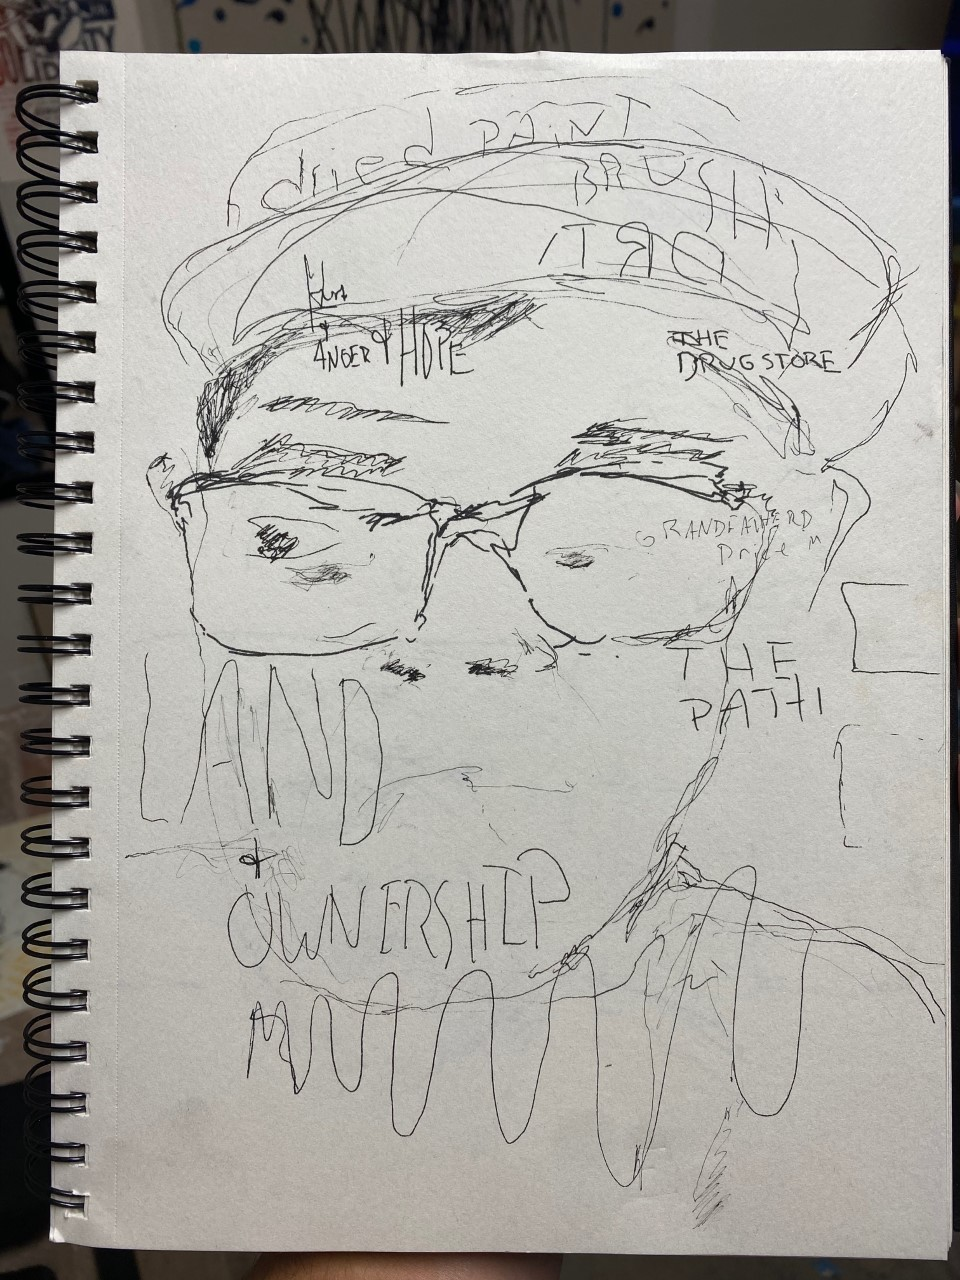 A rough sketch of a person with glasses, featuring abstract doodles and text